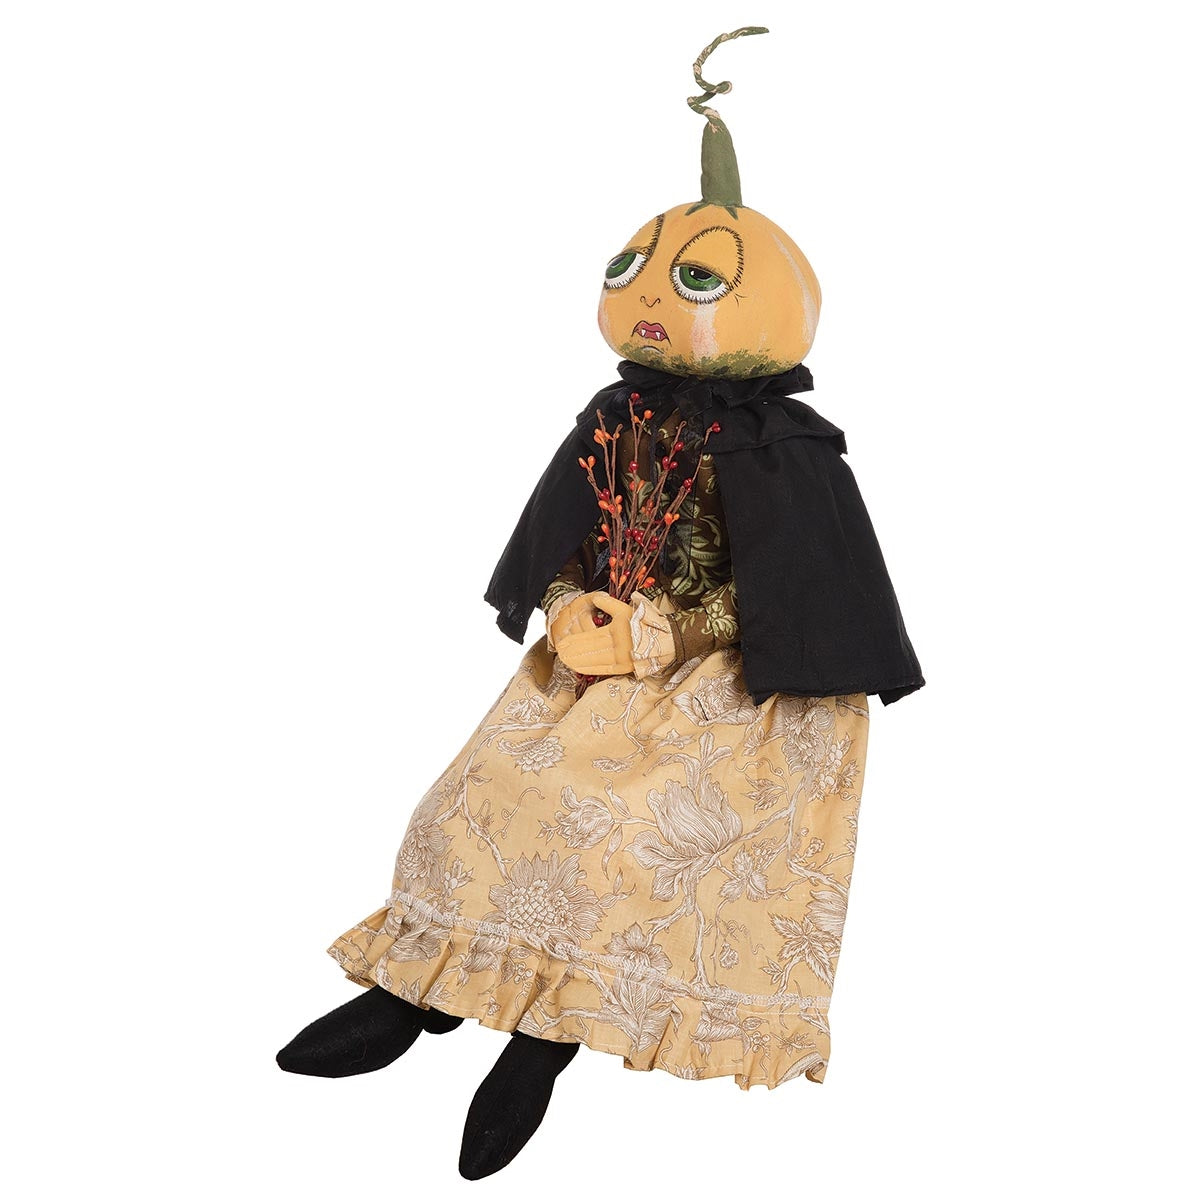 Joe Spencer Effie Pumpkin Head Doll - 2019